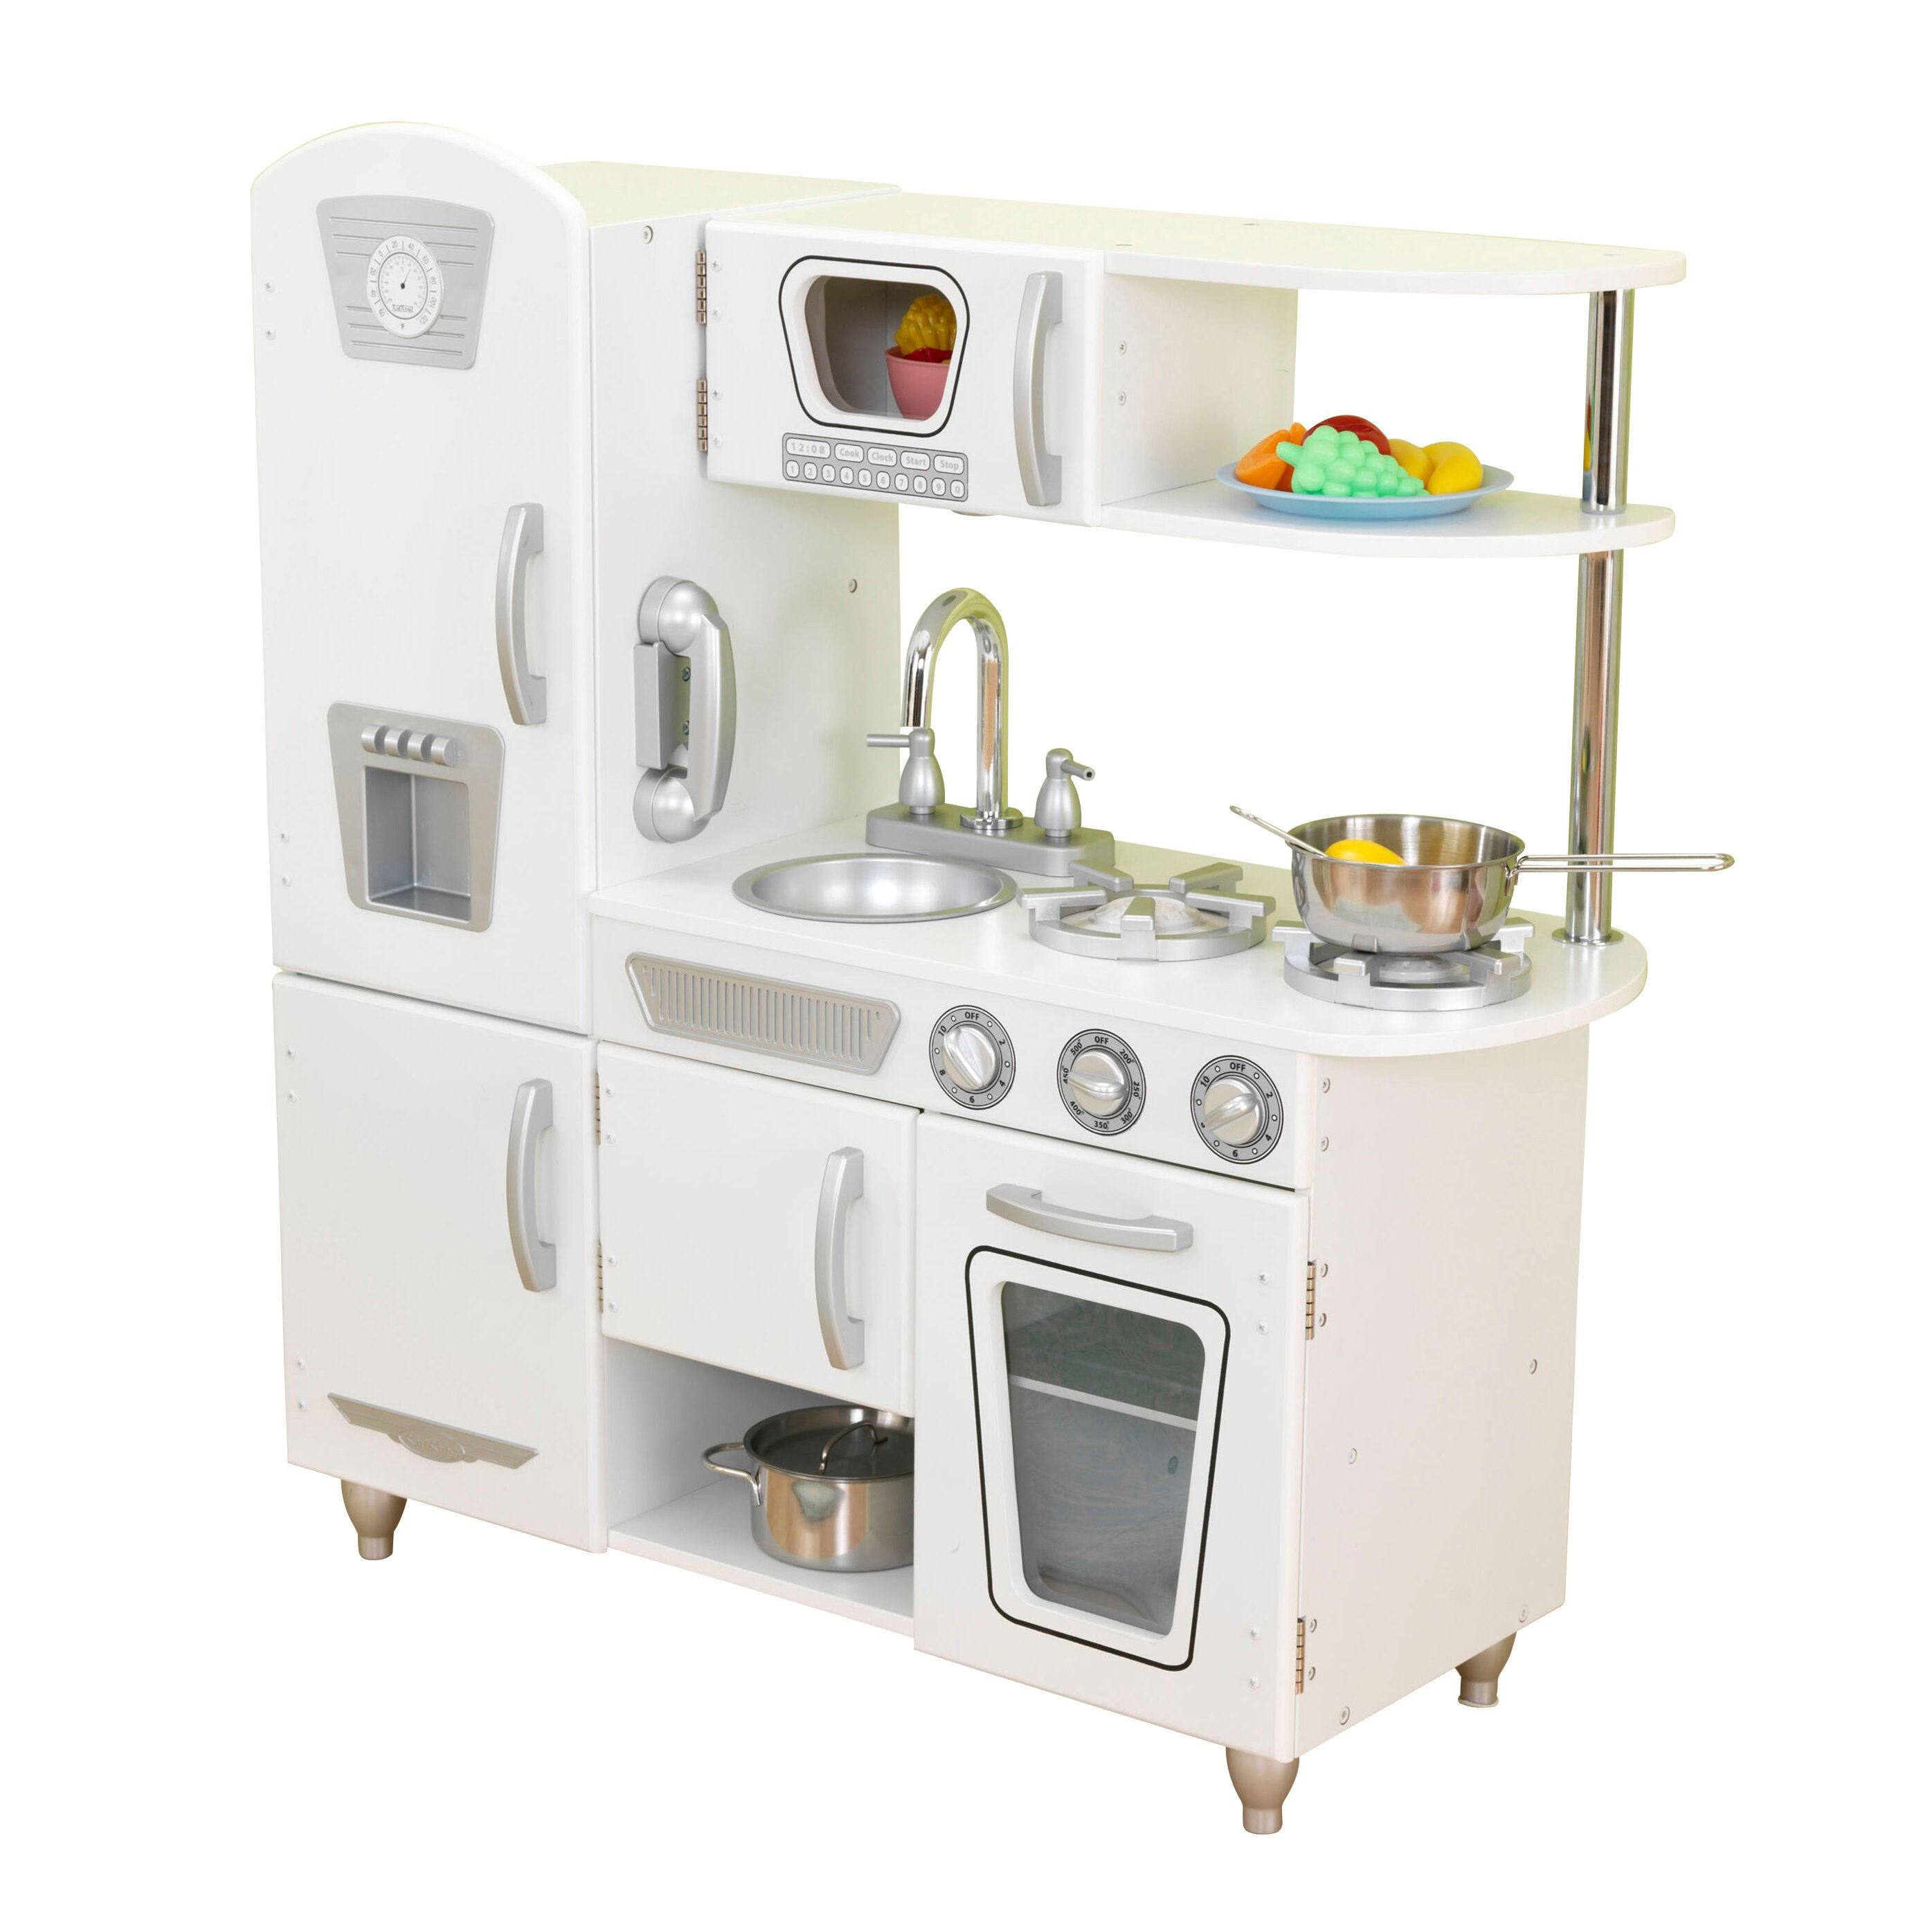 new kidkraft retro kitchen white - taste